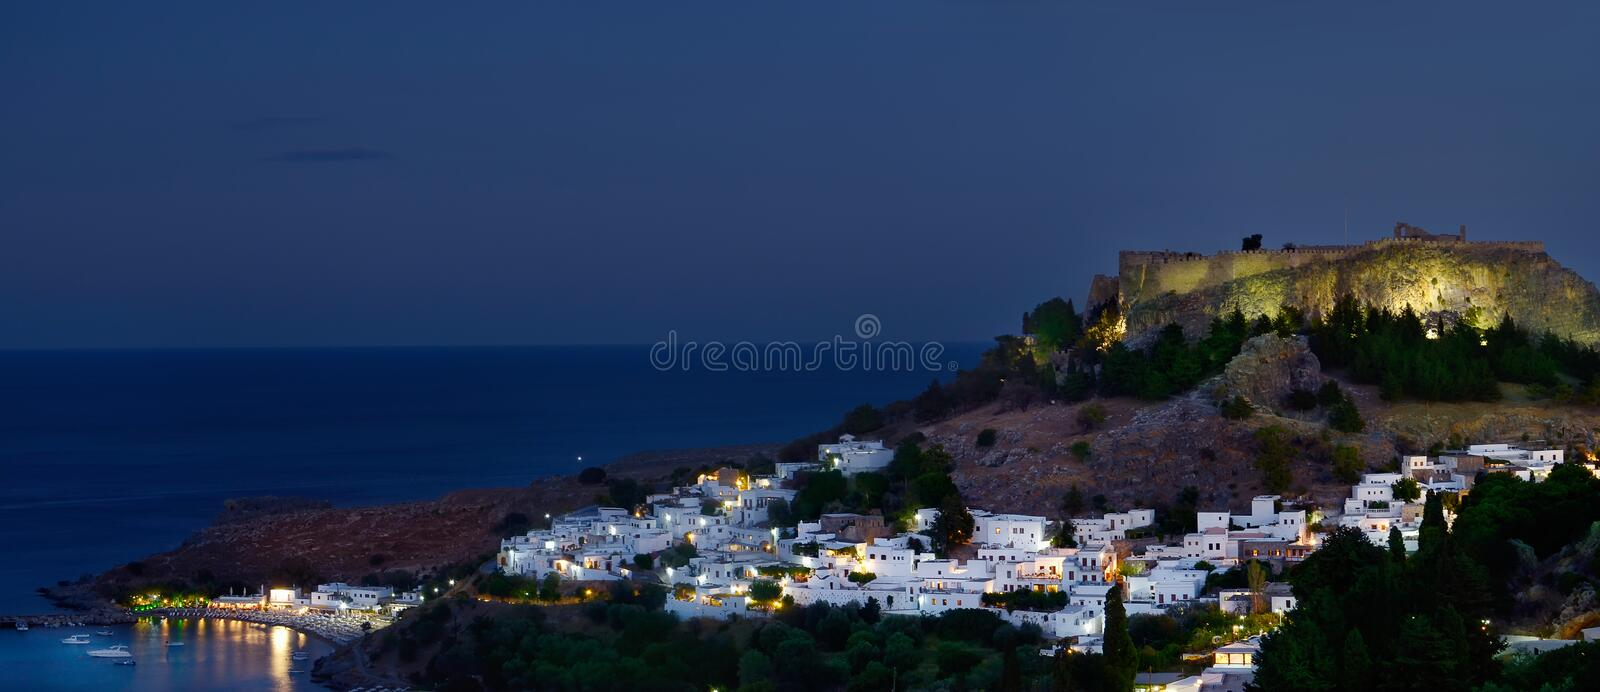 Lindos by night royalty free stock photo